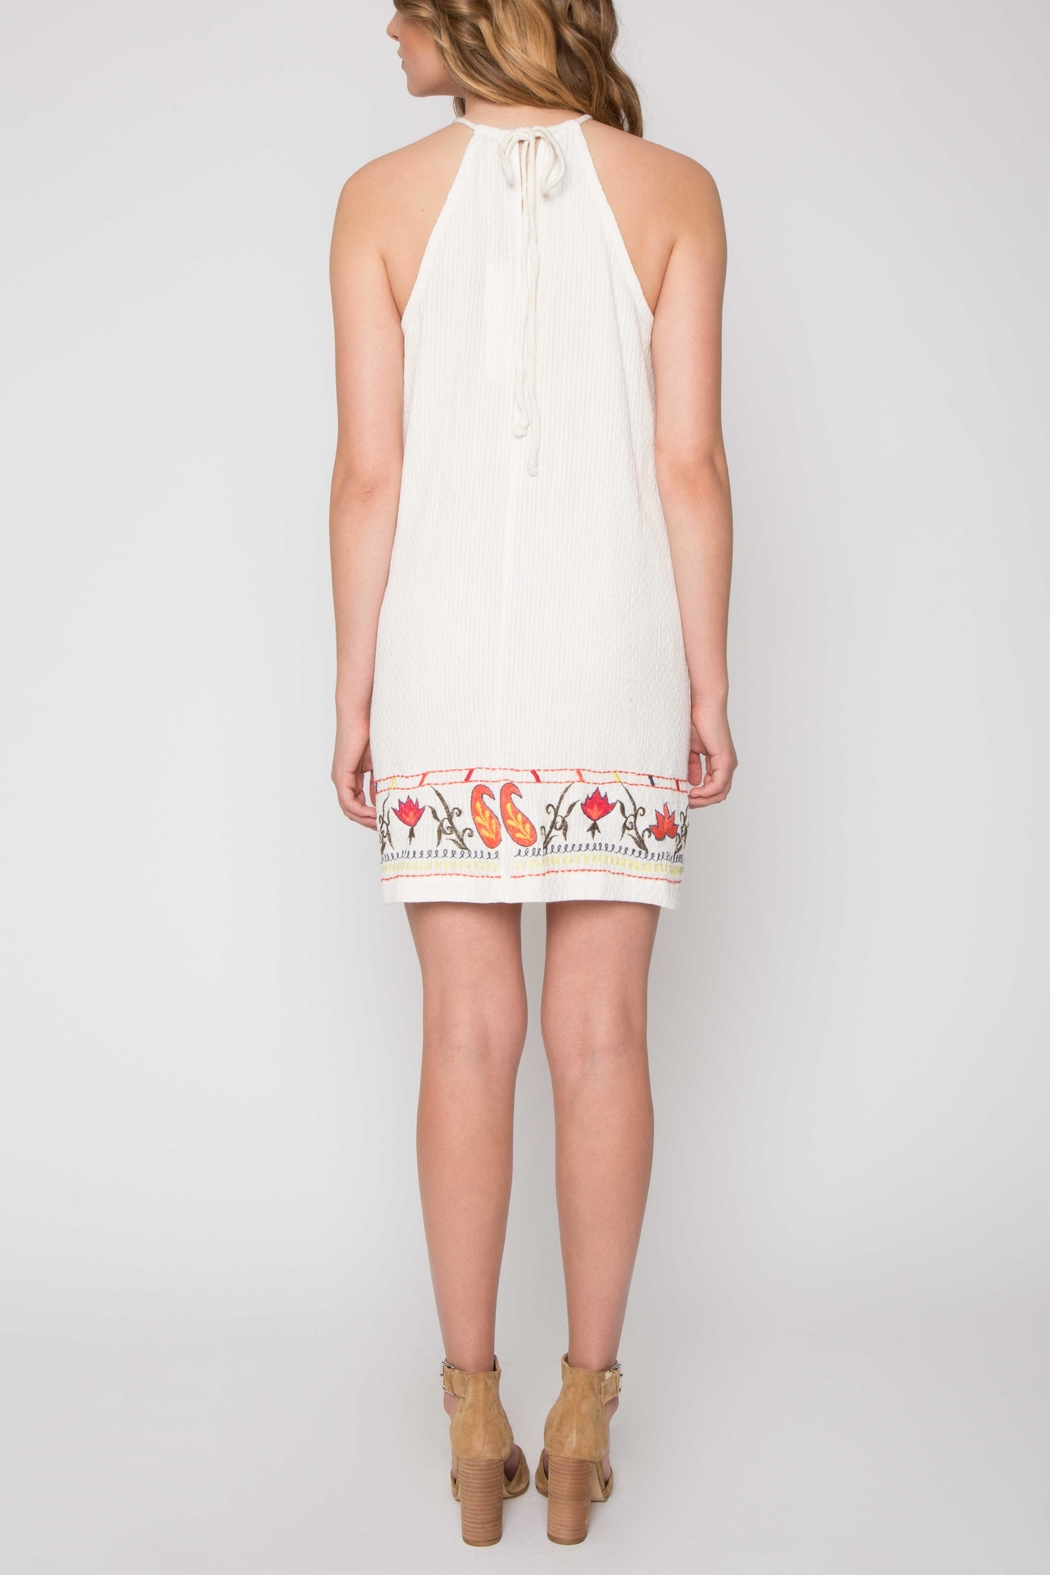 Willow & Clay Embroidered Halter Dress - Front Full Image